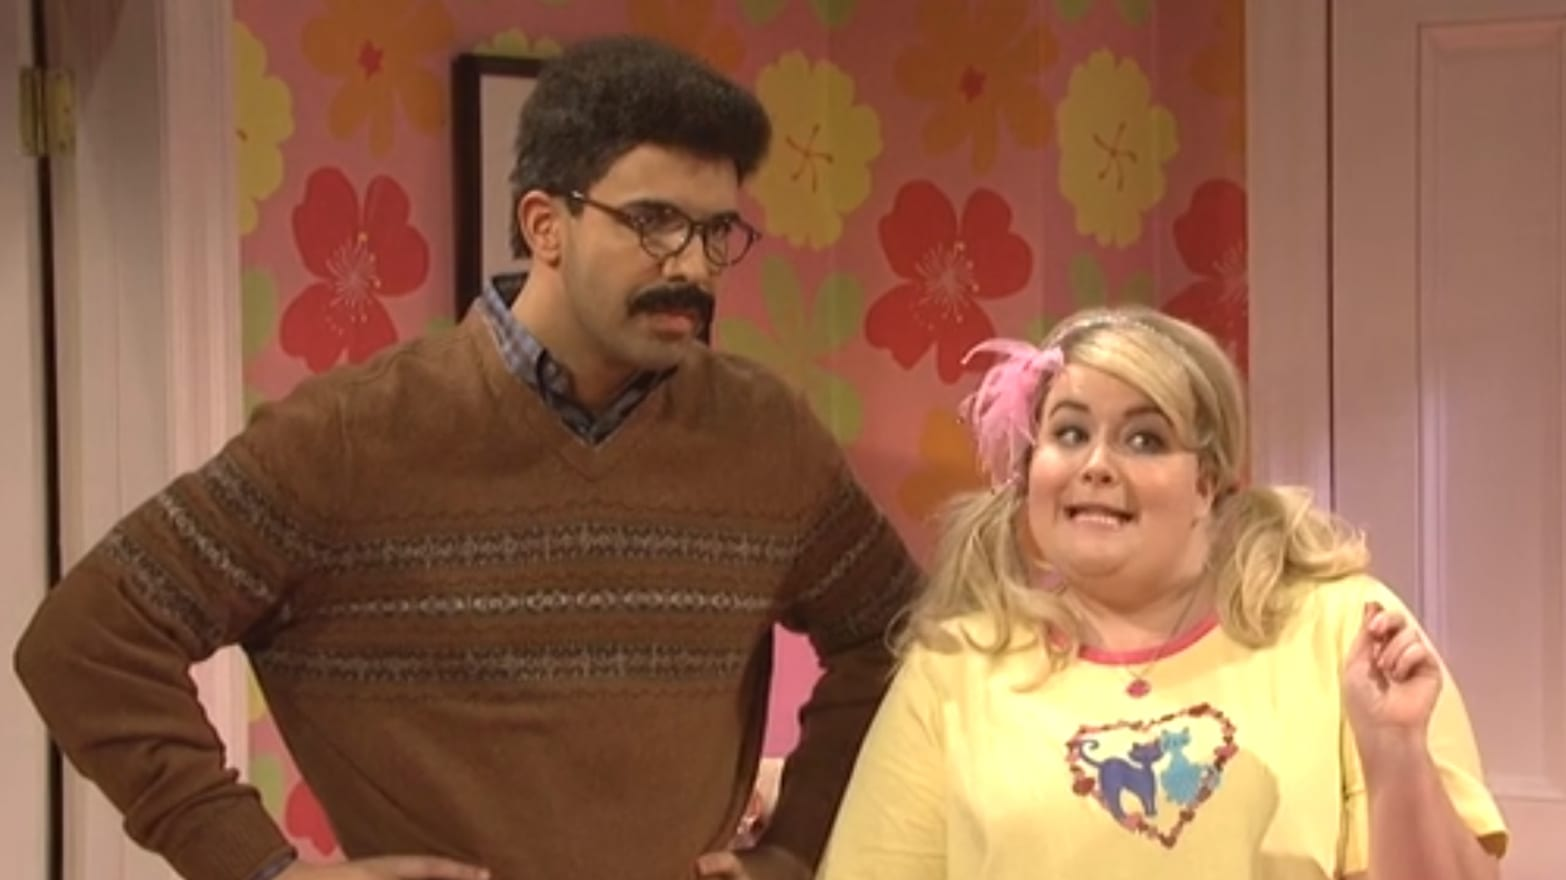 Snl i fucked your wife valuable